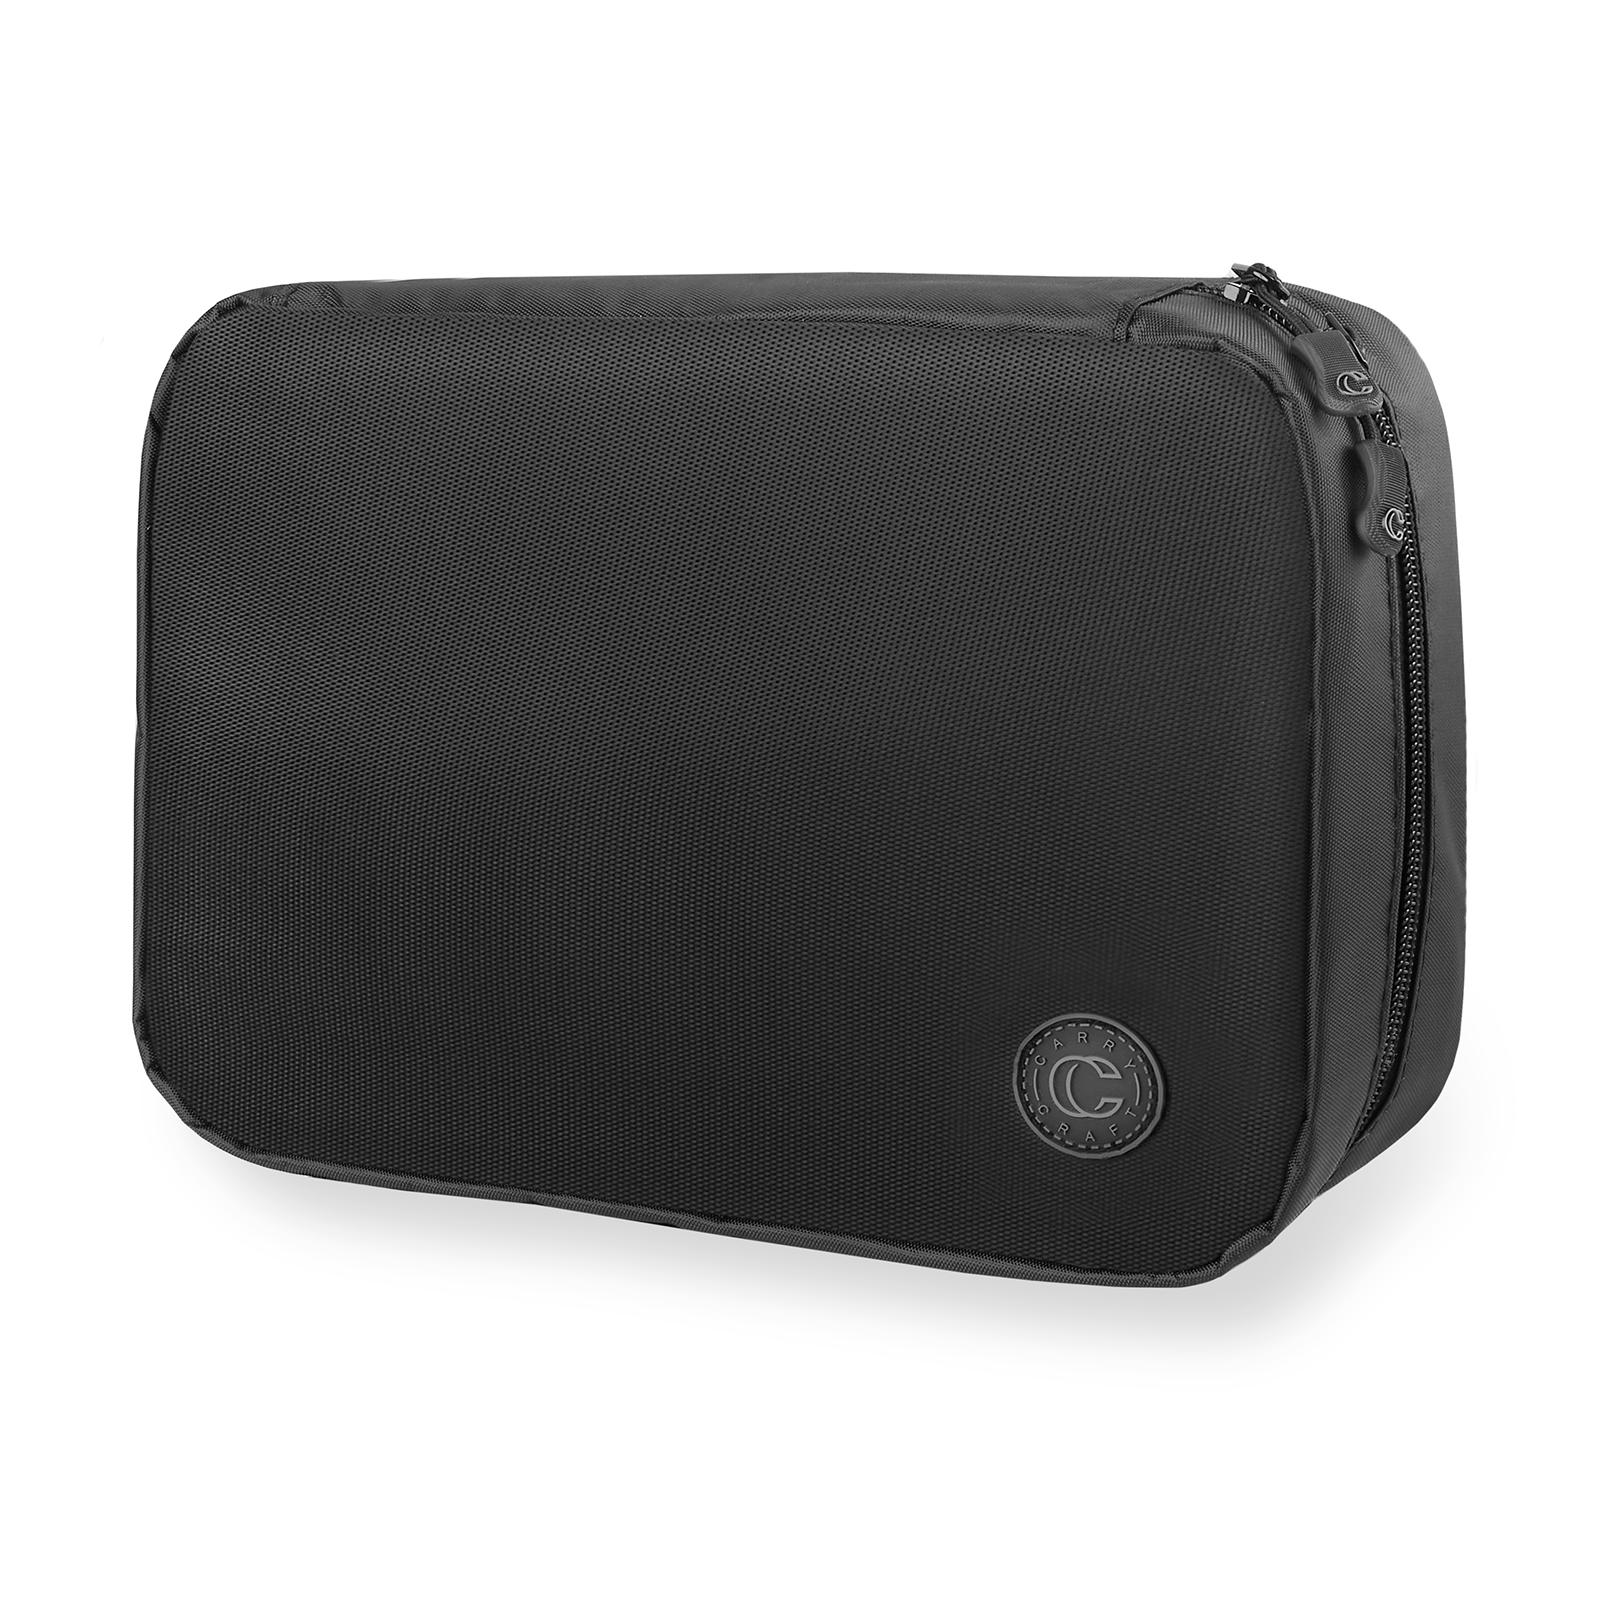 74217199ea71 Carry Craft Hanging Fold-Out Travel Toiletry Bag for Men and Women -  Organizer Case for Shaving Kit, Makeup and Hygiene Essentials - Black